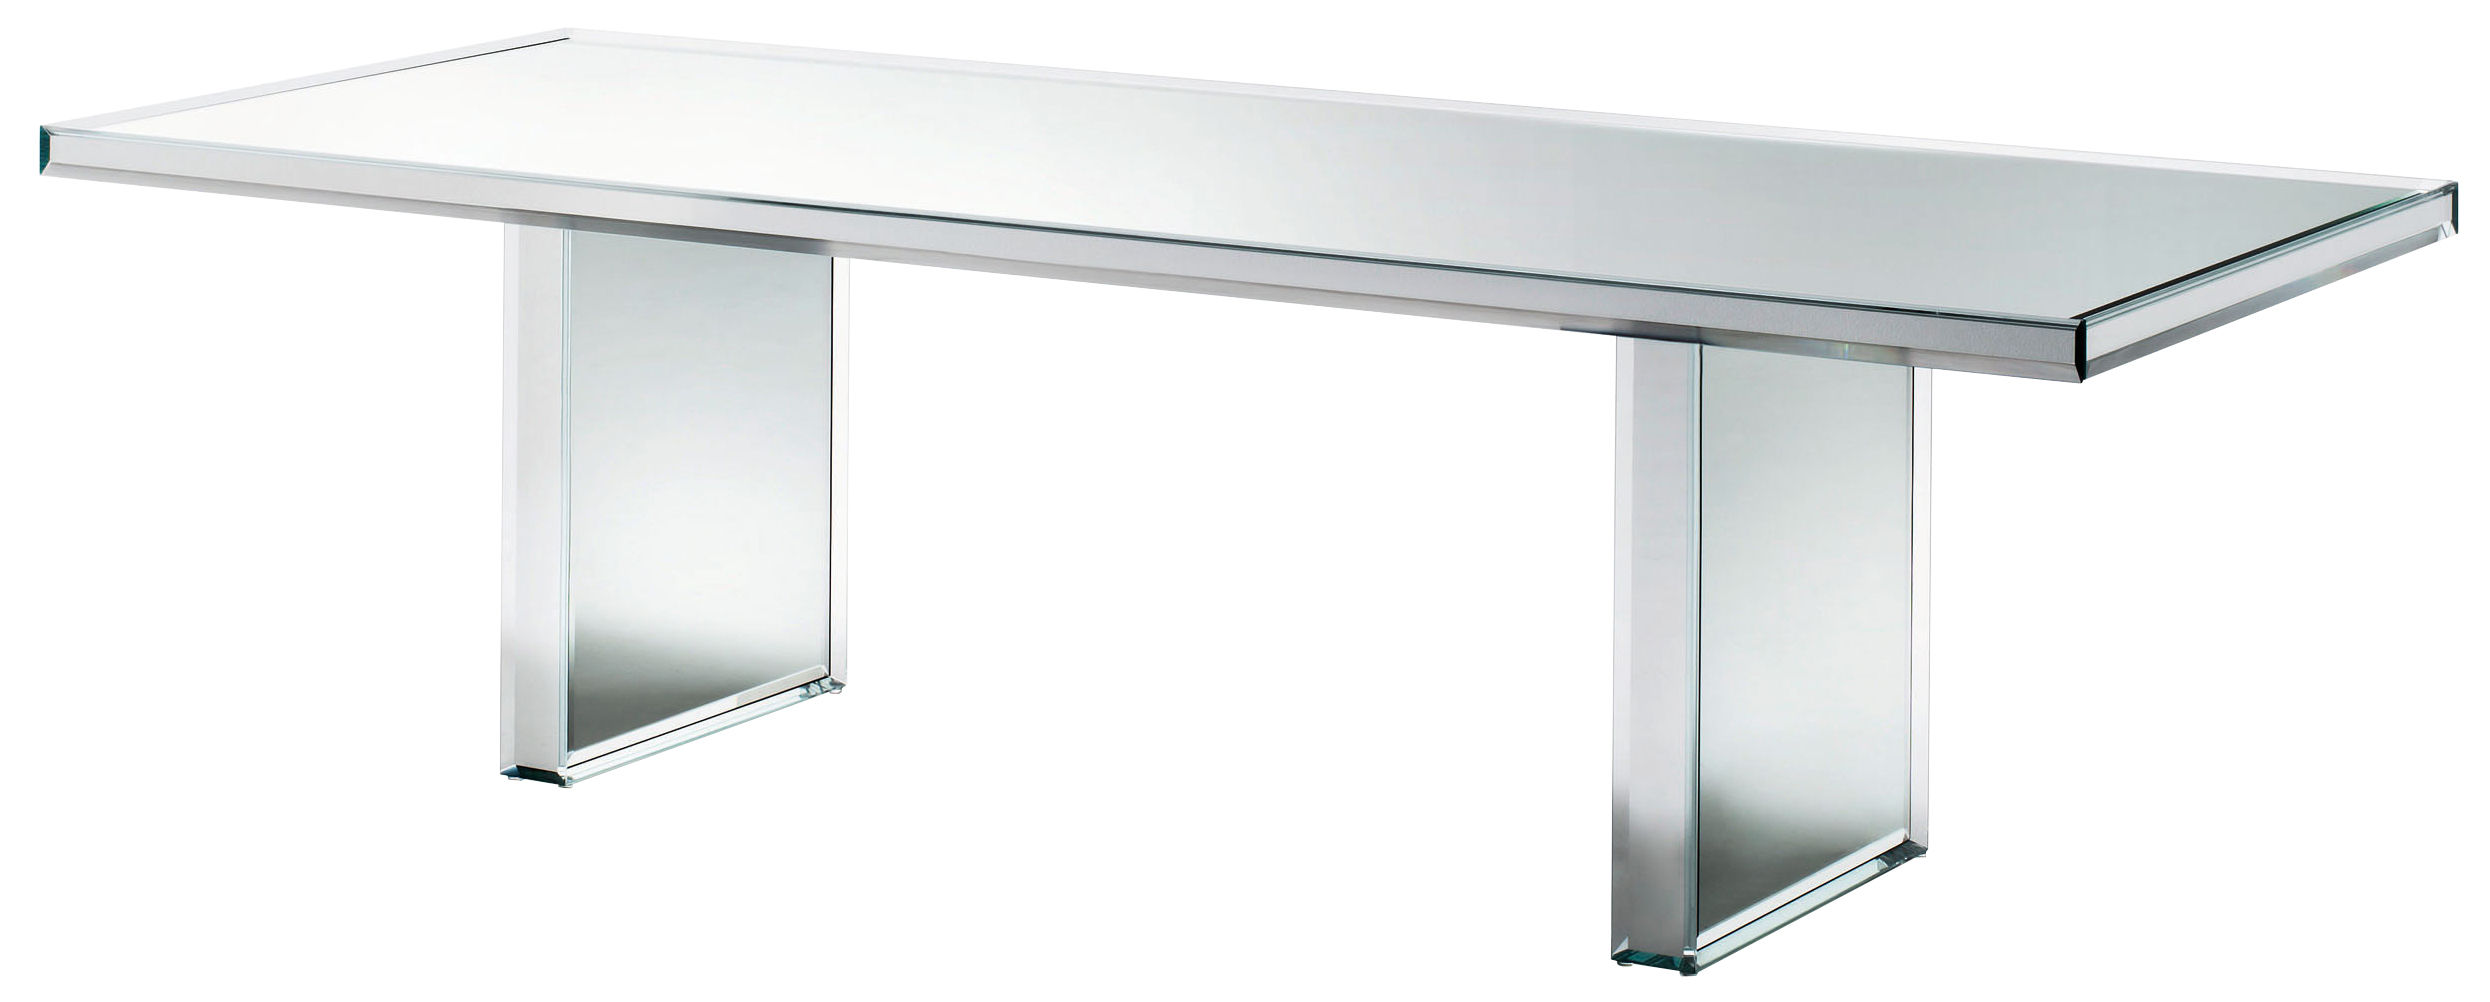 Furniture - Dining Tables - Prism Mirror Rectangular table by Glas Italia - Mirror - Mirror finish glass